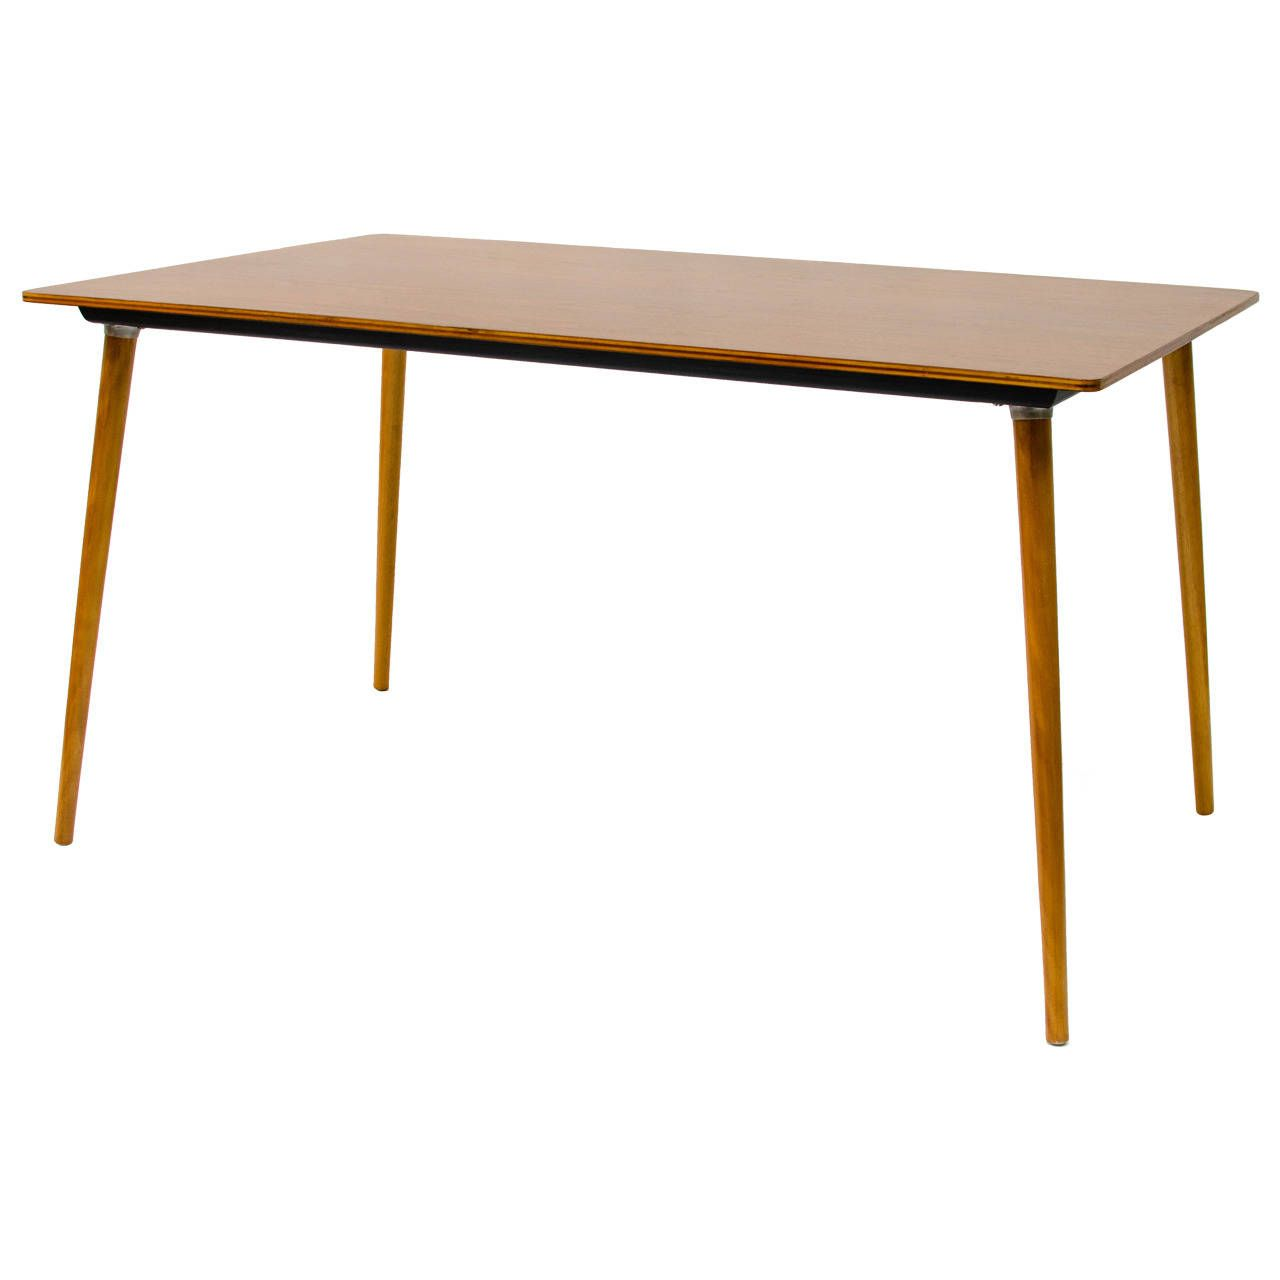 Eames Dtw 3 Wood Leg Dining Table 1stdibs